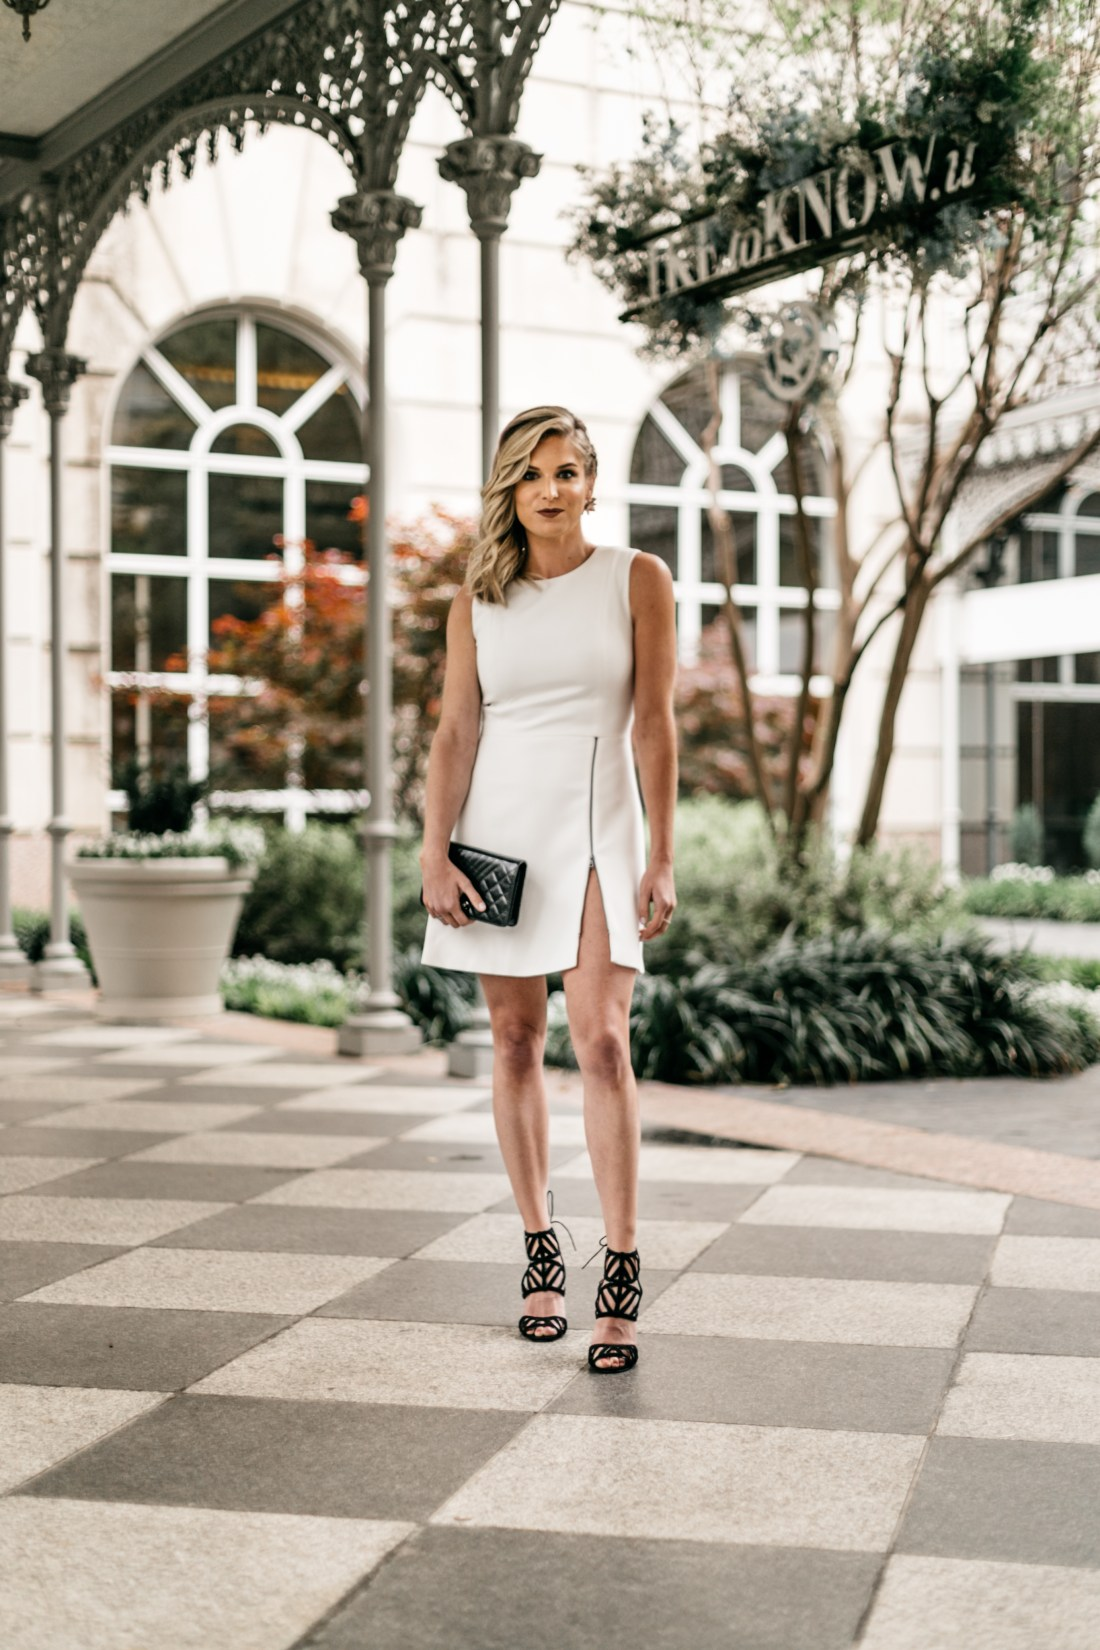 Outfit details: Black Clutch // White Sleeveless Dress with Zipper //Black Open Toe Heels